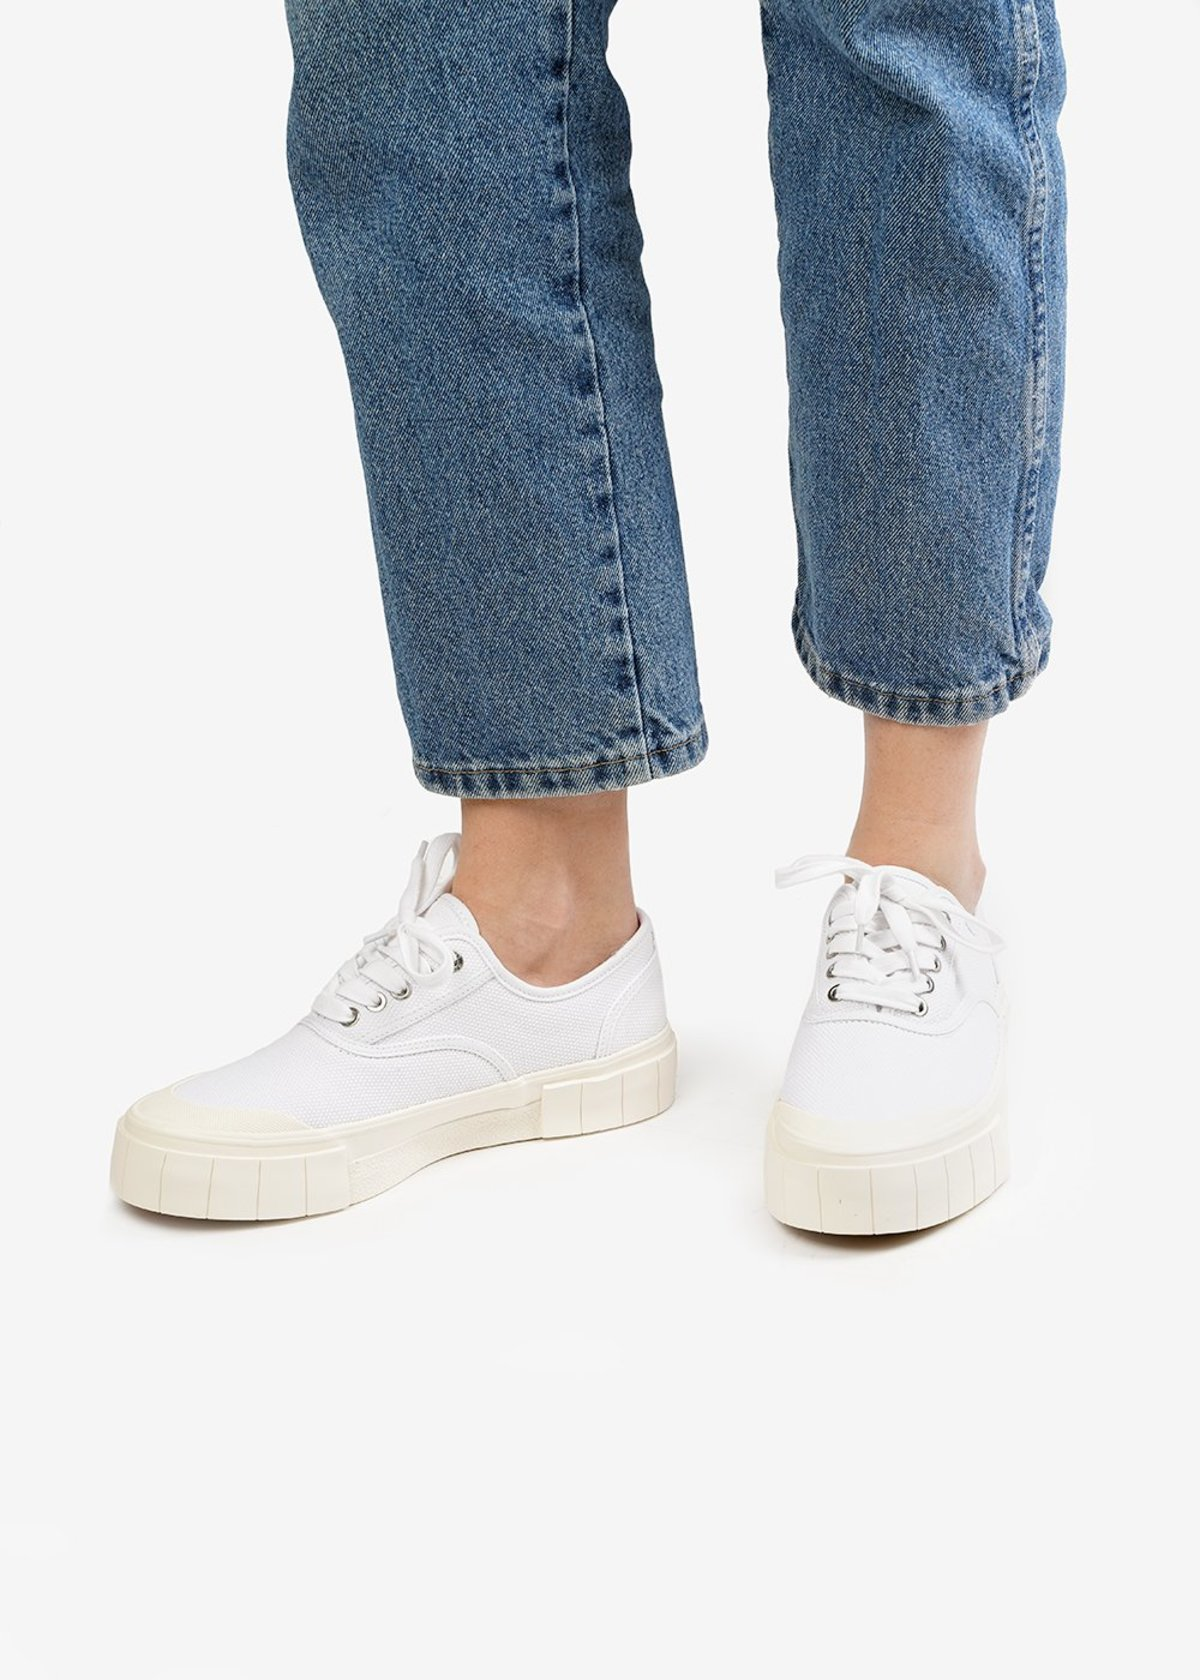 Unisex Good News Ace Sneakers - White